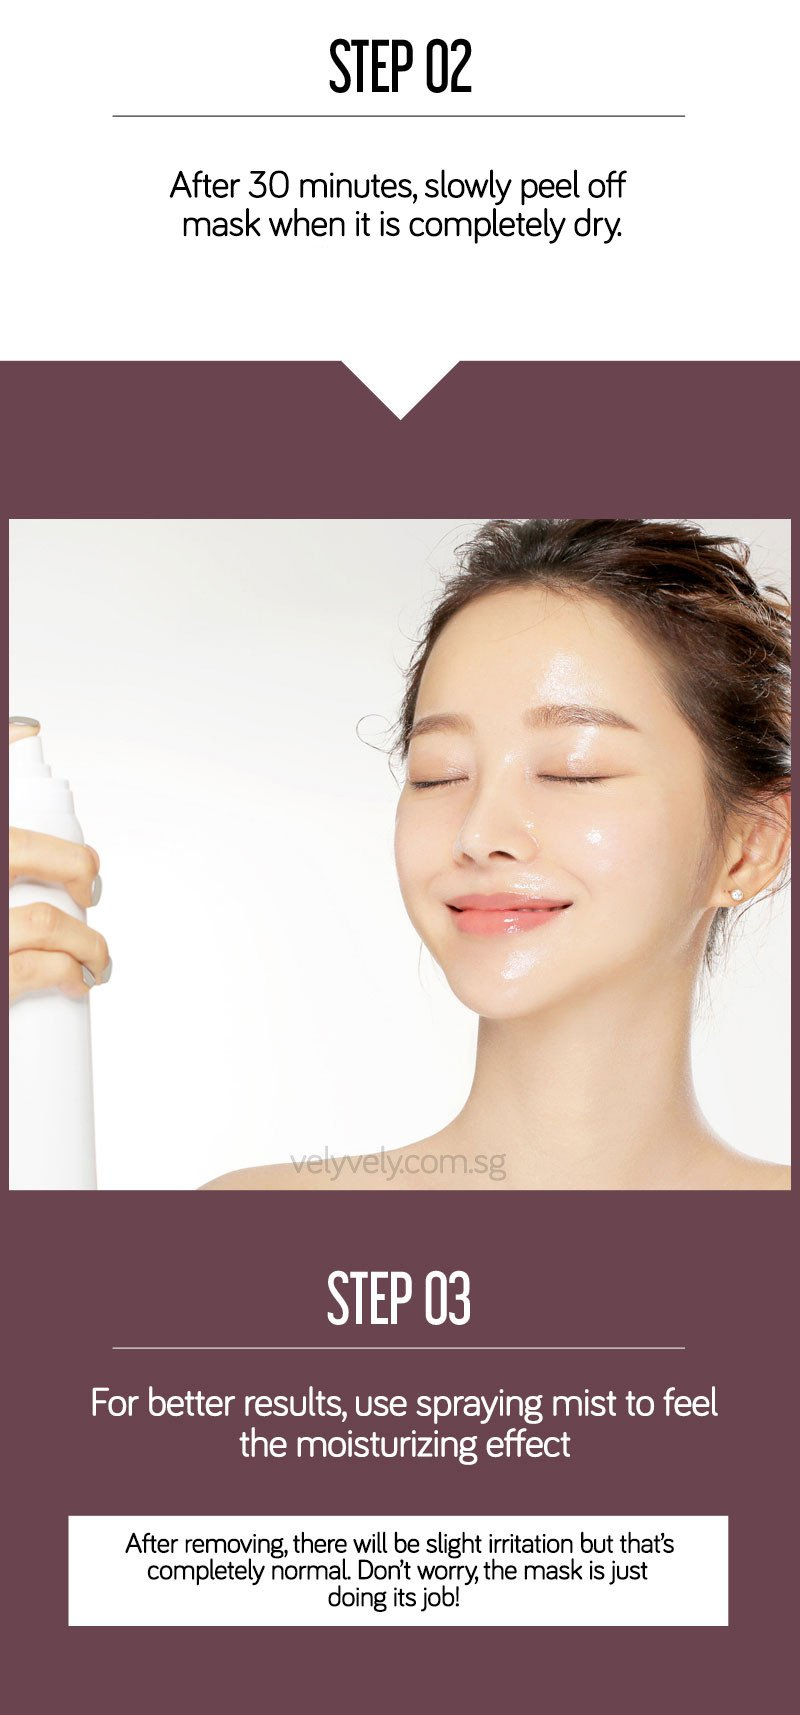 How to use Korea's Cosmetic Brand, Vely Vely Sweet Rice Cake Peel-Off Mask